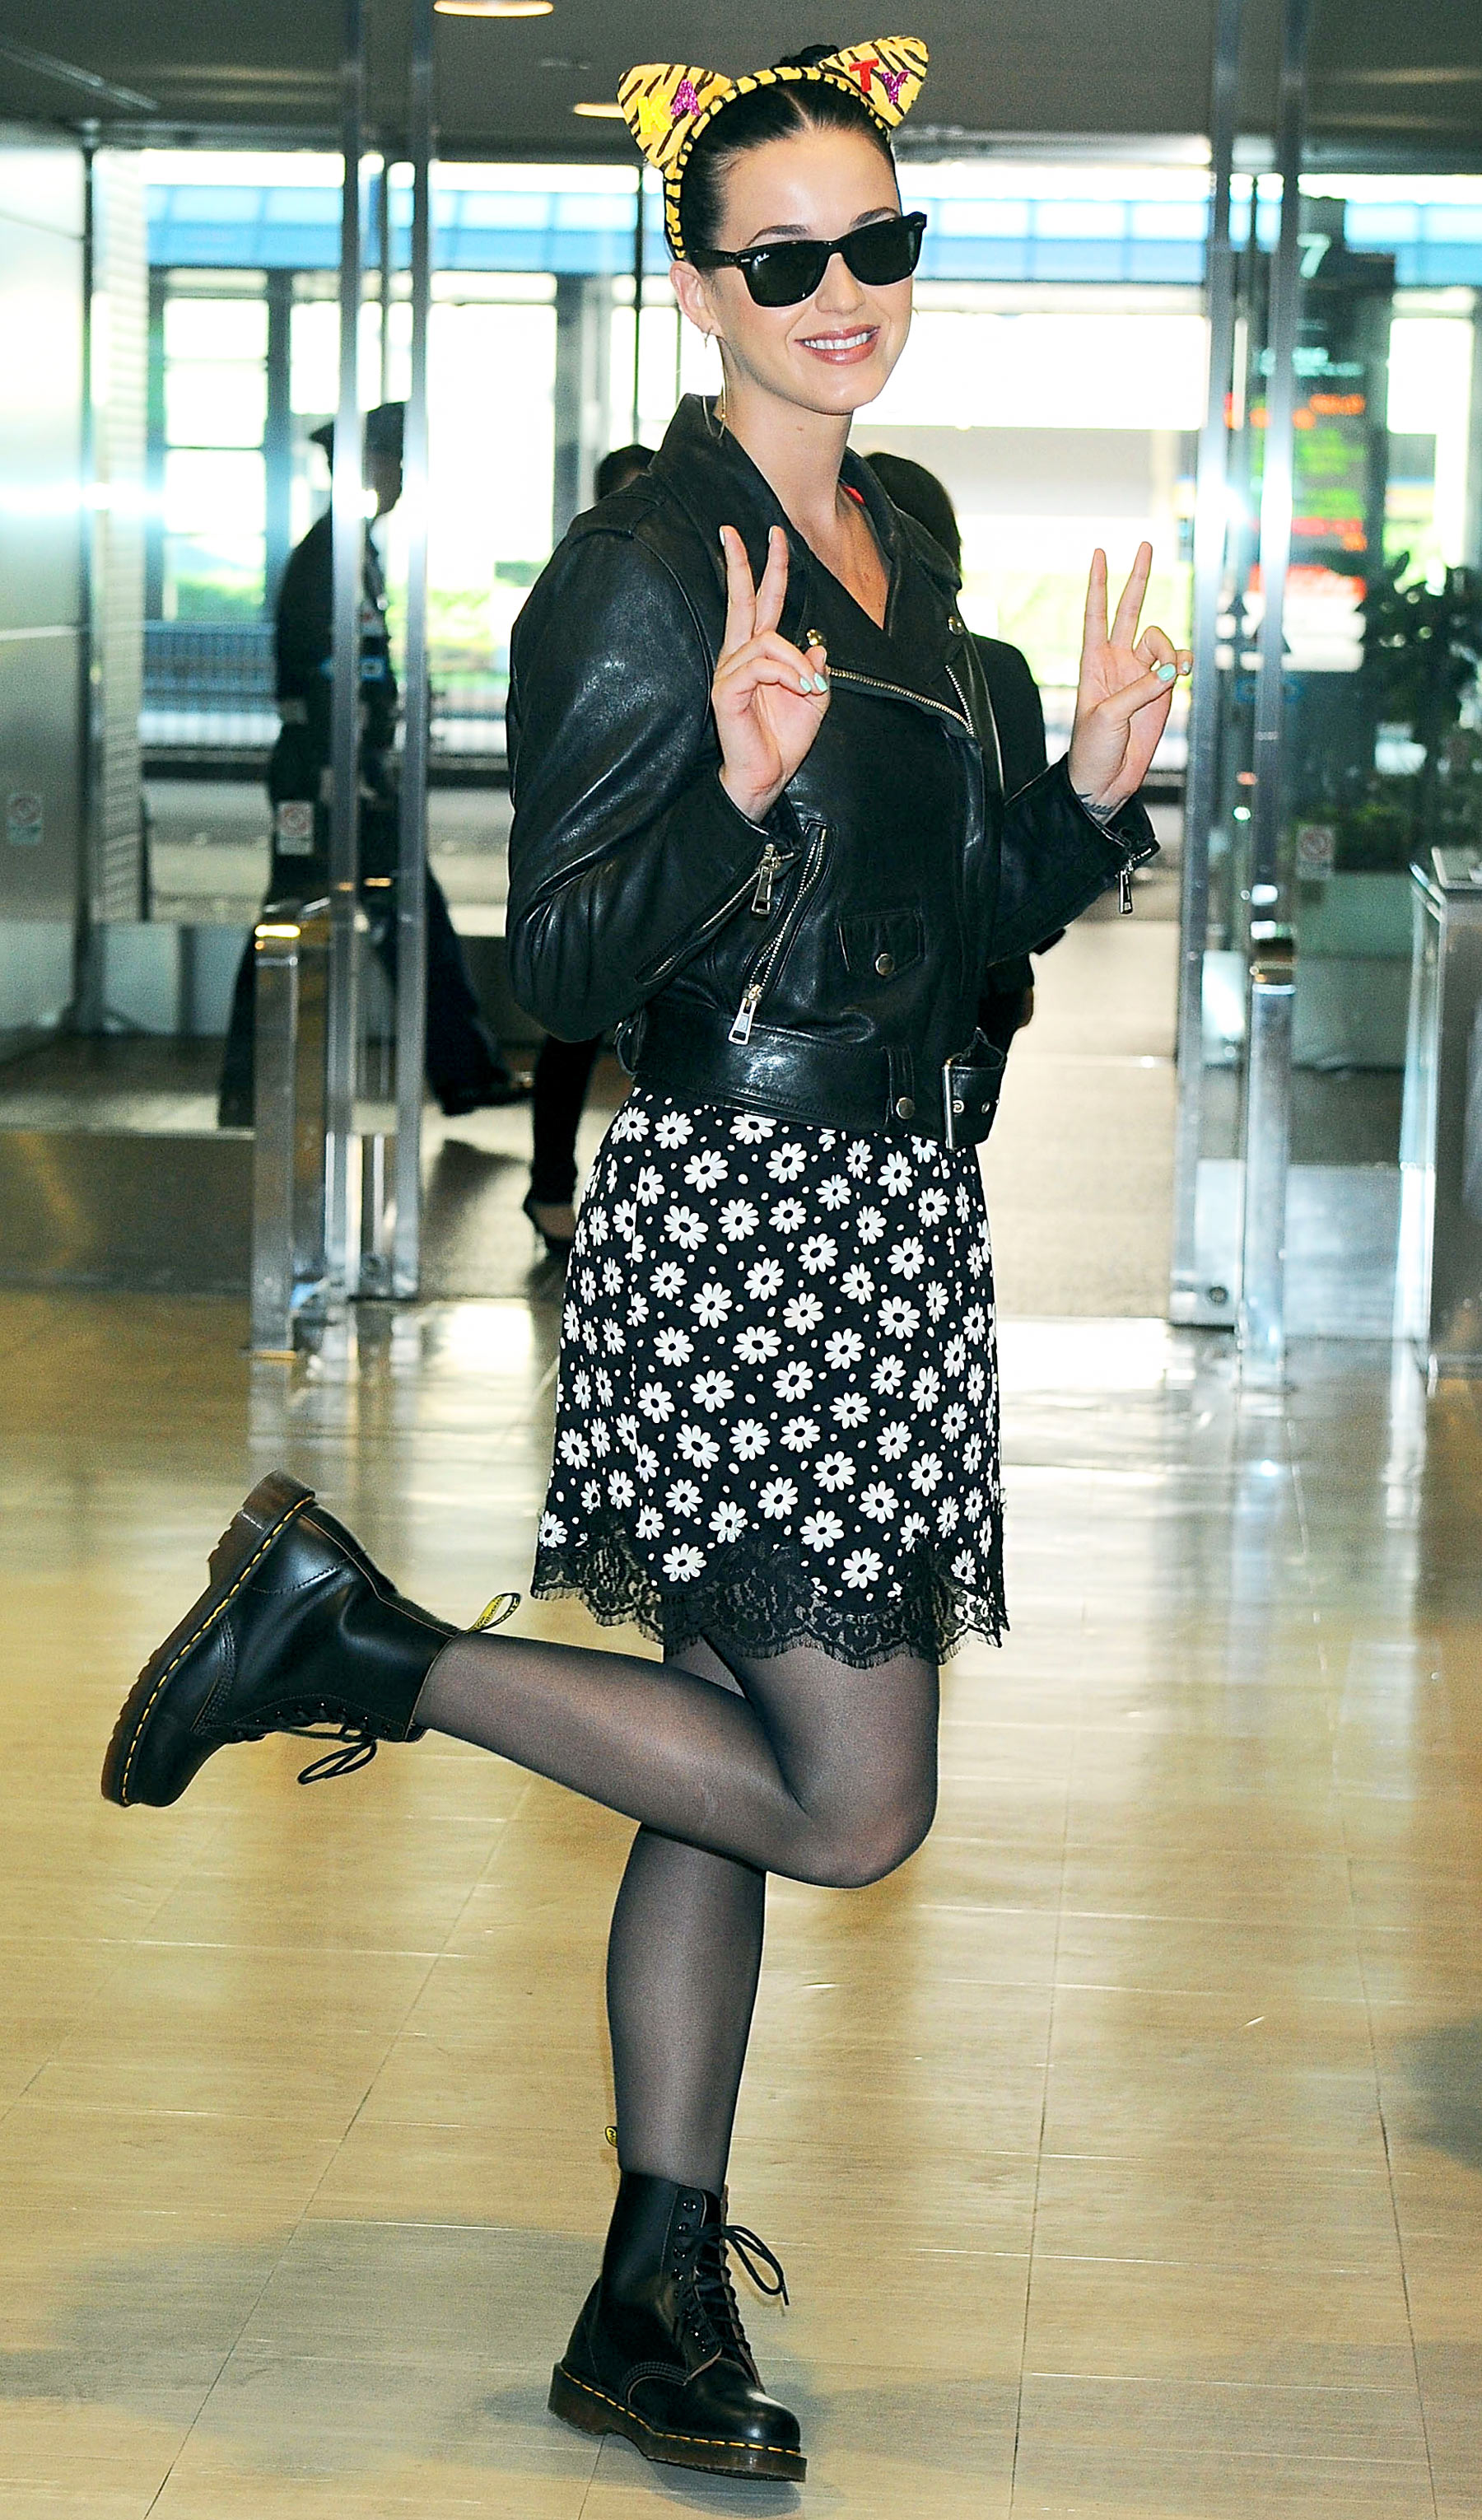 Arriving in Japan in cat ears, a moto jacket, and a black-and-white floral printed dress.